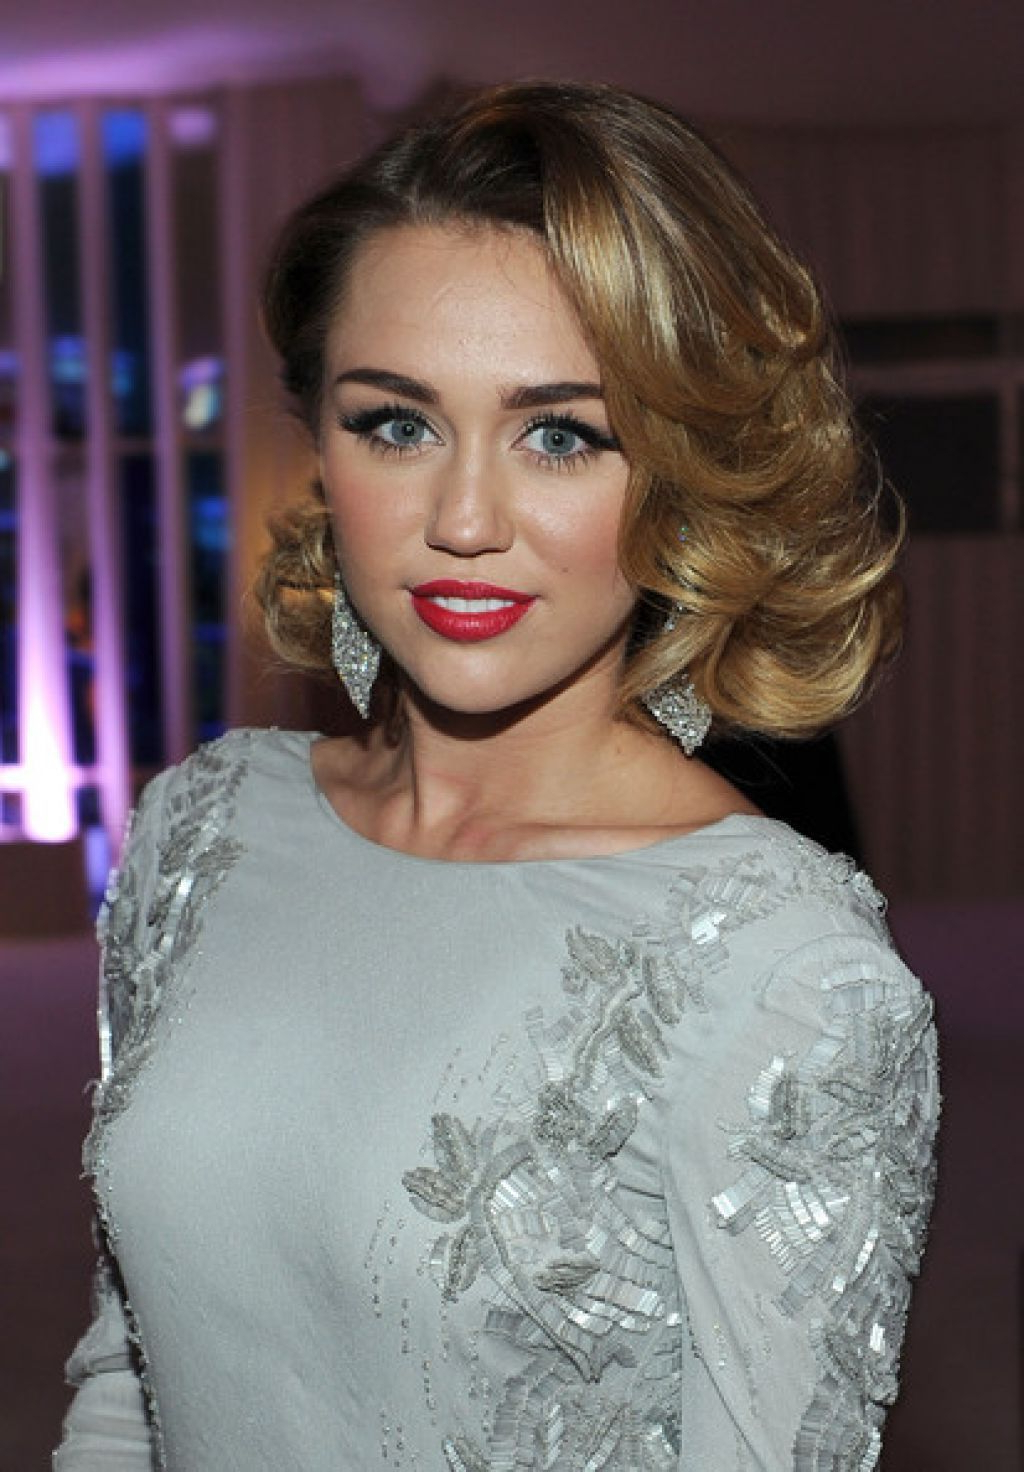 Recent Miley Cyrus Medium Hairstyles Pertaining To Miley Cyrus Medium Shoulder Length Hairstyles For Wavy Hair Photo (Gallery 7 of 20)